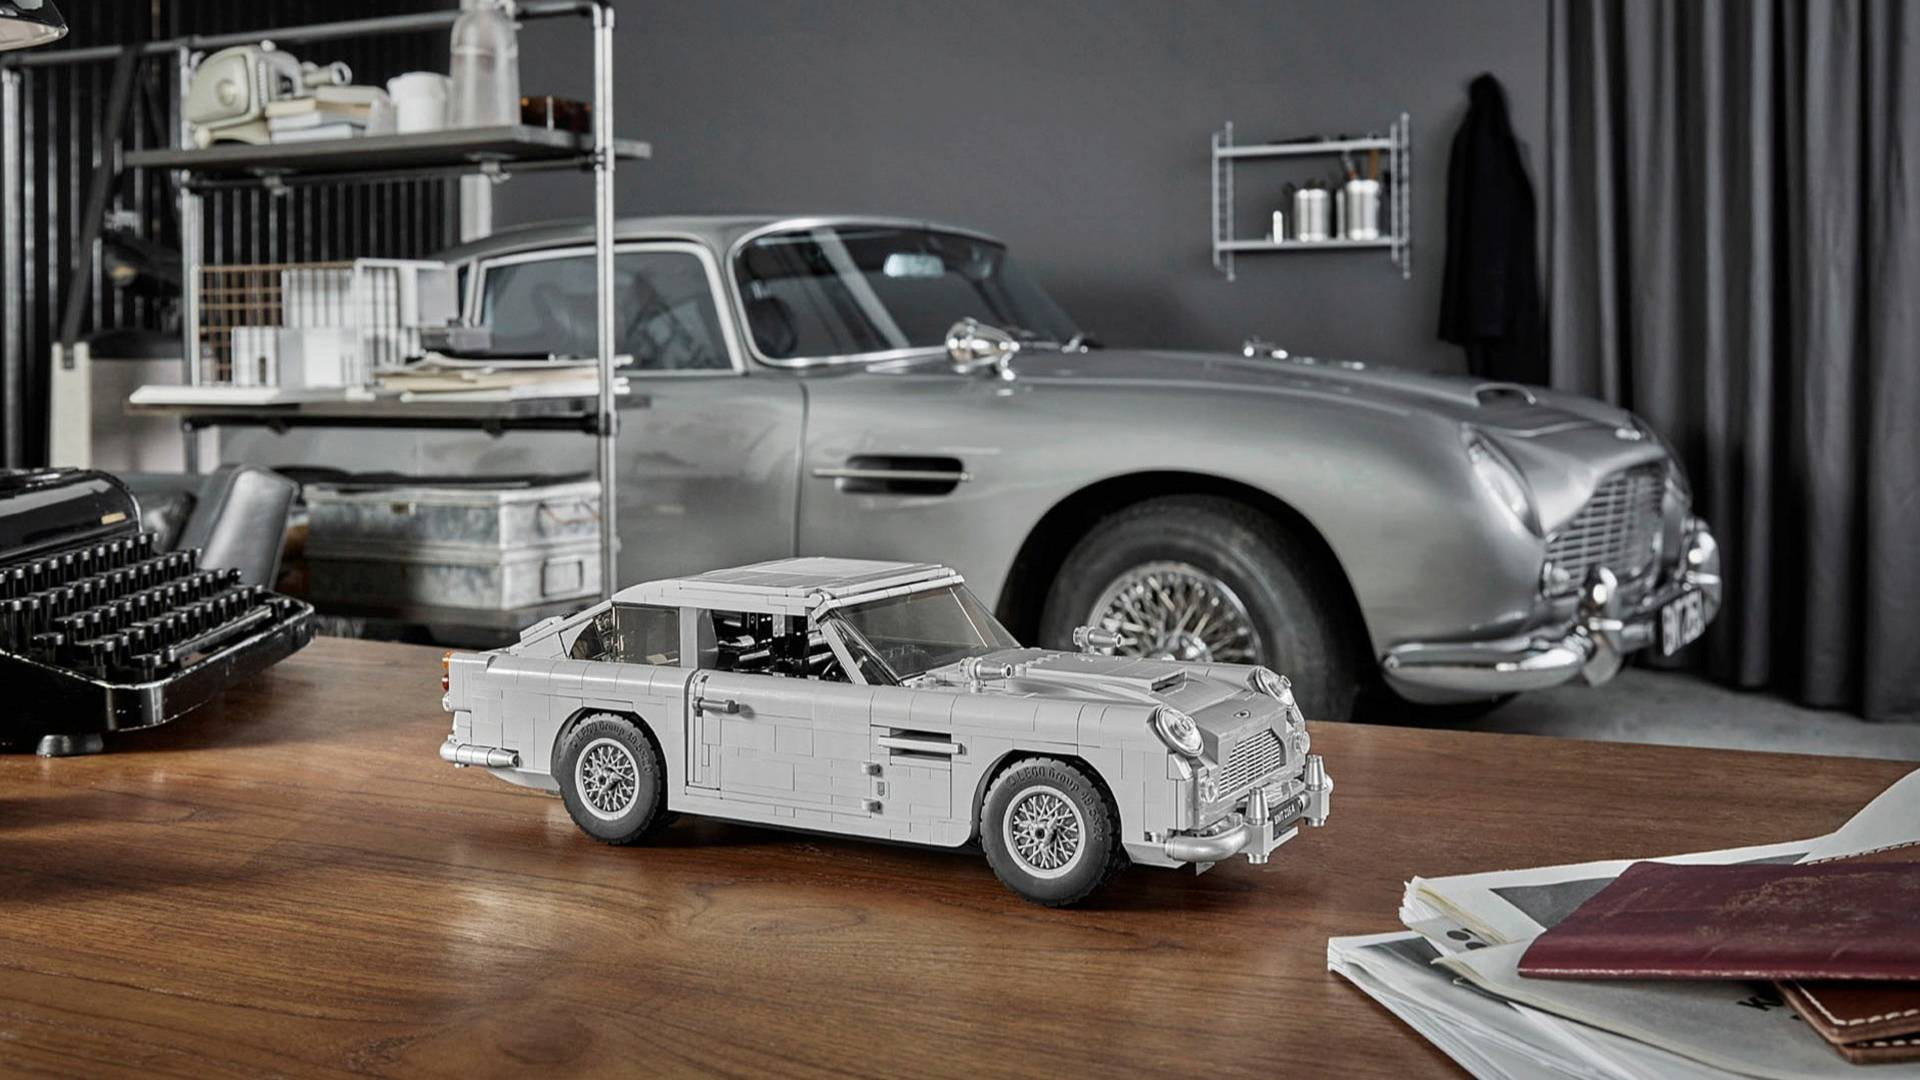 Lego James Bond Aston Martin DB Demands Our Money - Aston martin db5 1964 price